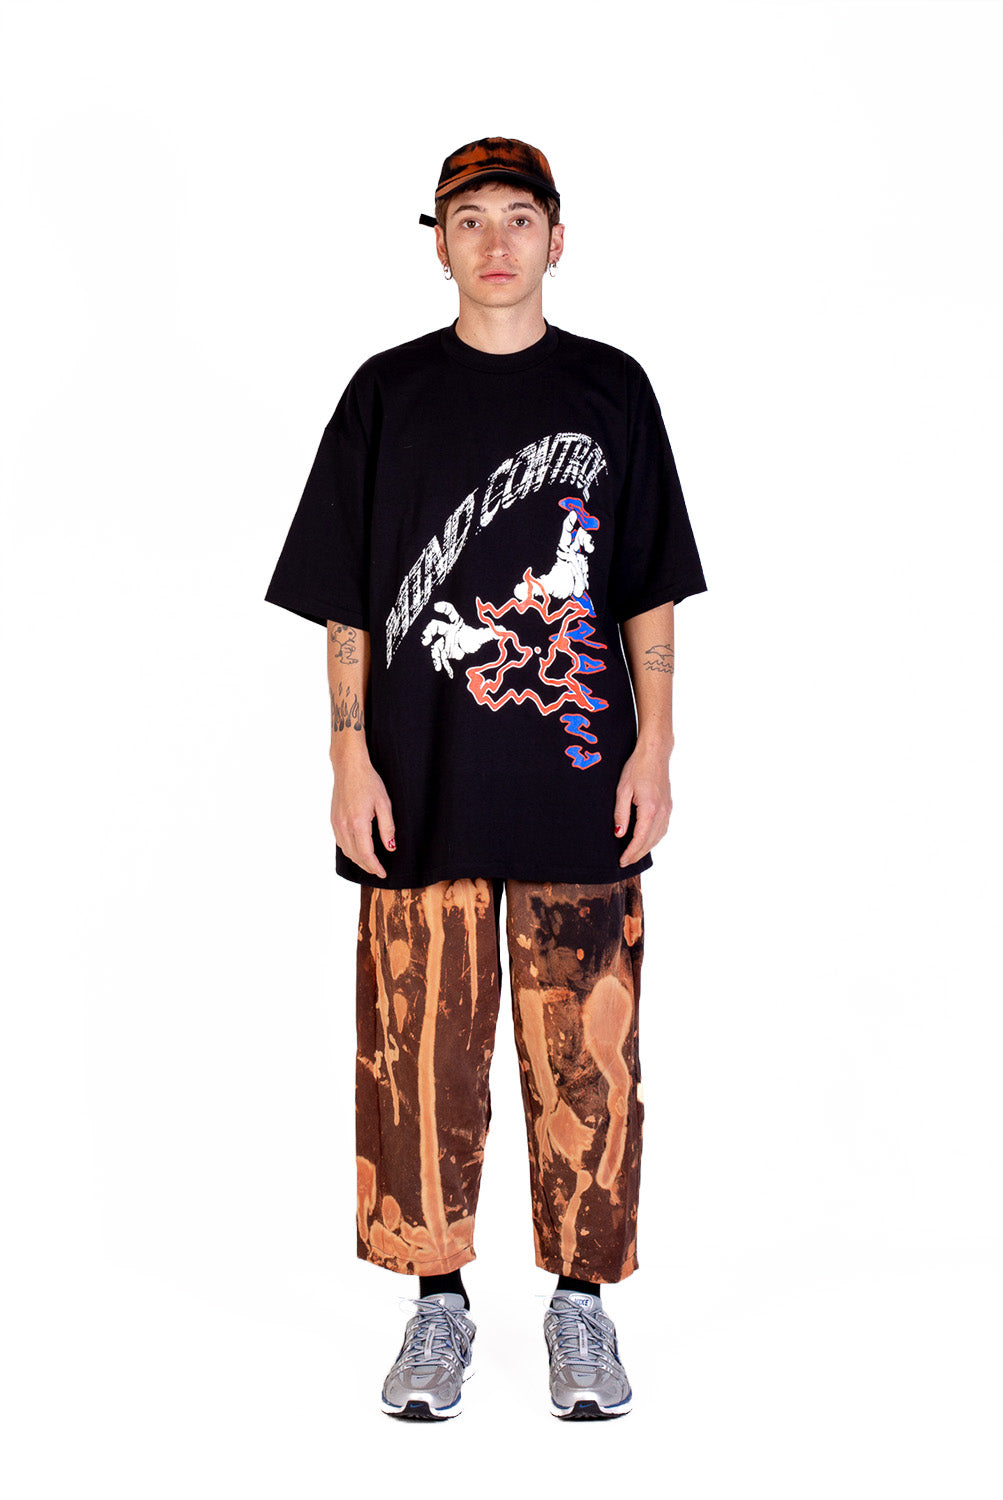 ABOMBA - TAPERED PANT - BLEACH